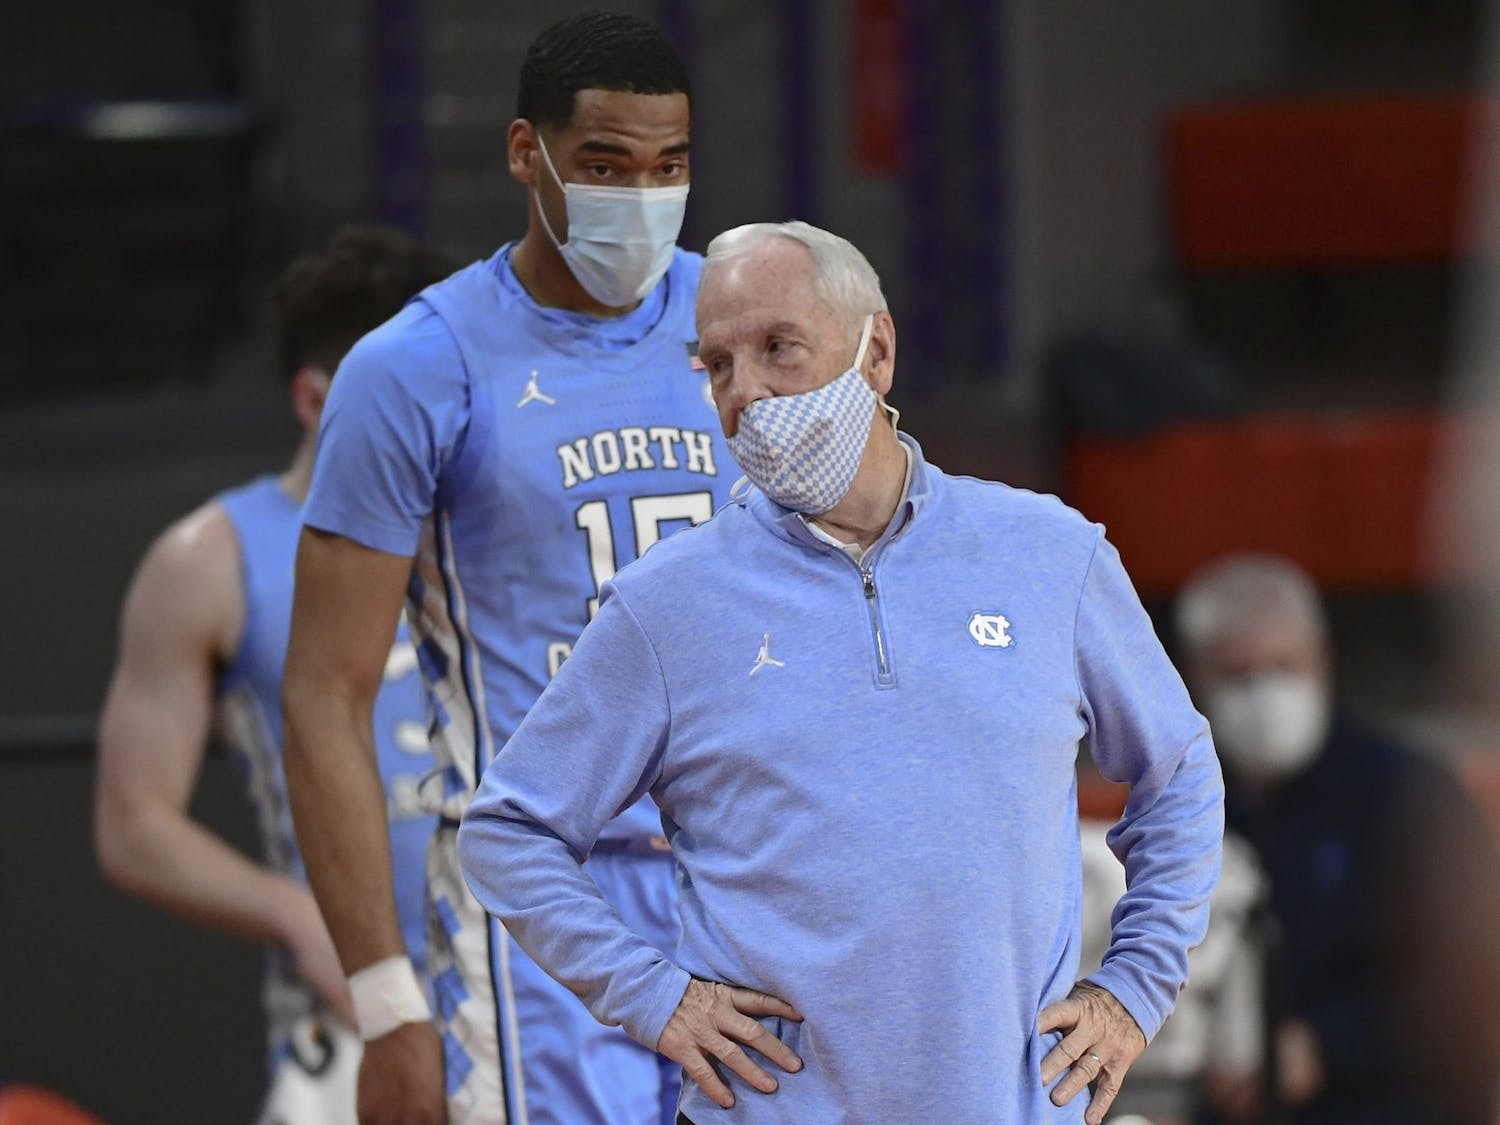 Head coach Roy Williams and senior forward Garrison Brooks (15) stand on the sideline during UNC's 63-50 loss at Clemson, Feb 2 2021. Photo courtesy of Ken Ruinard.